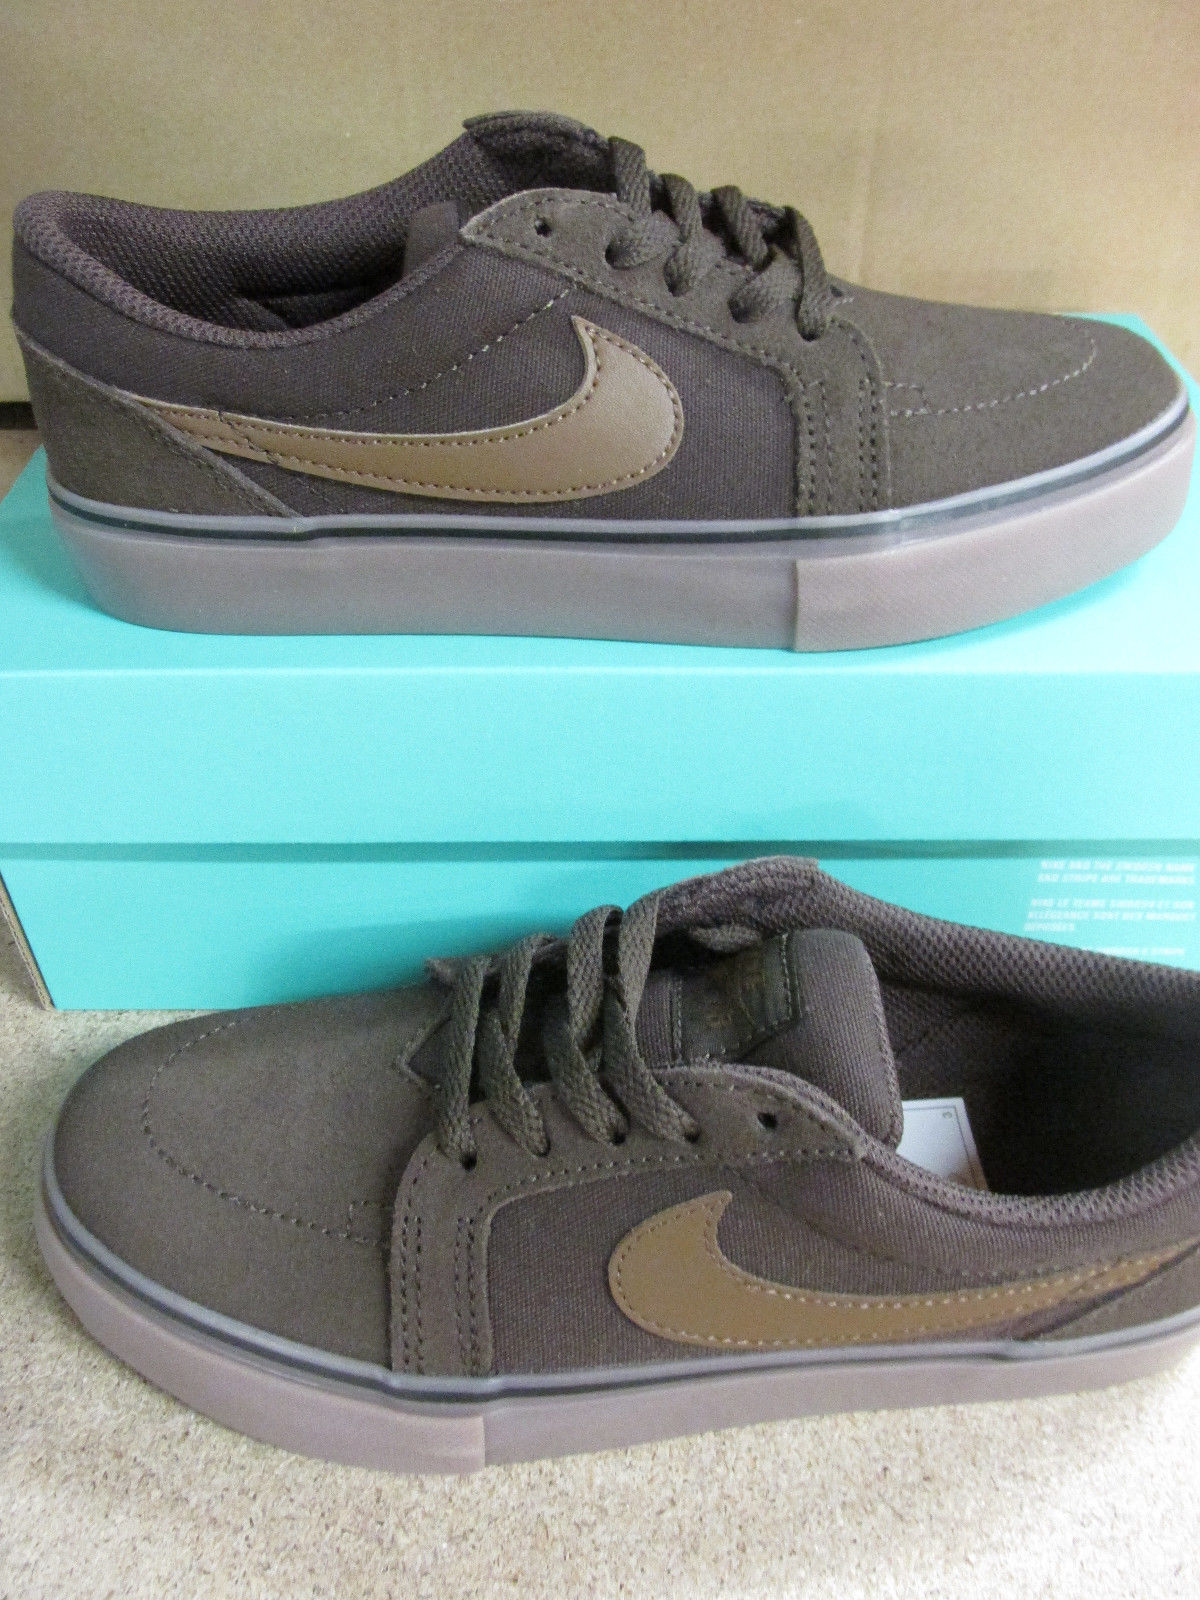 Nike Sb Satire Ii Gs Trainers 729810 220 Sneakers Shoes